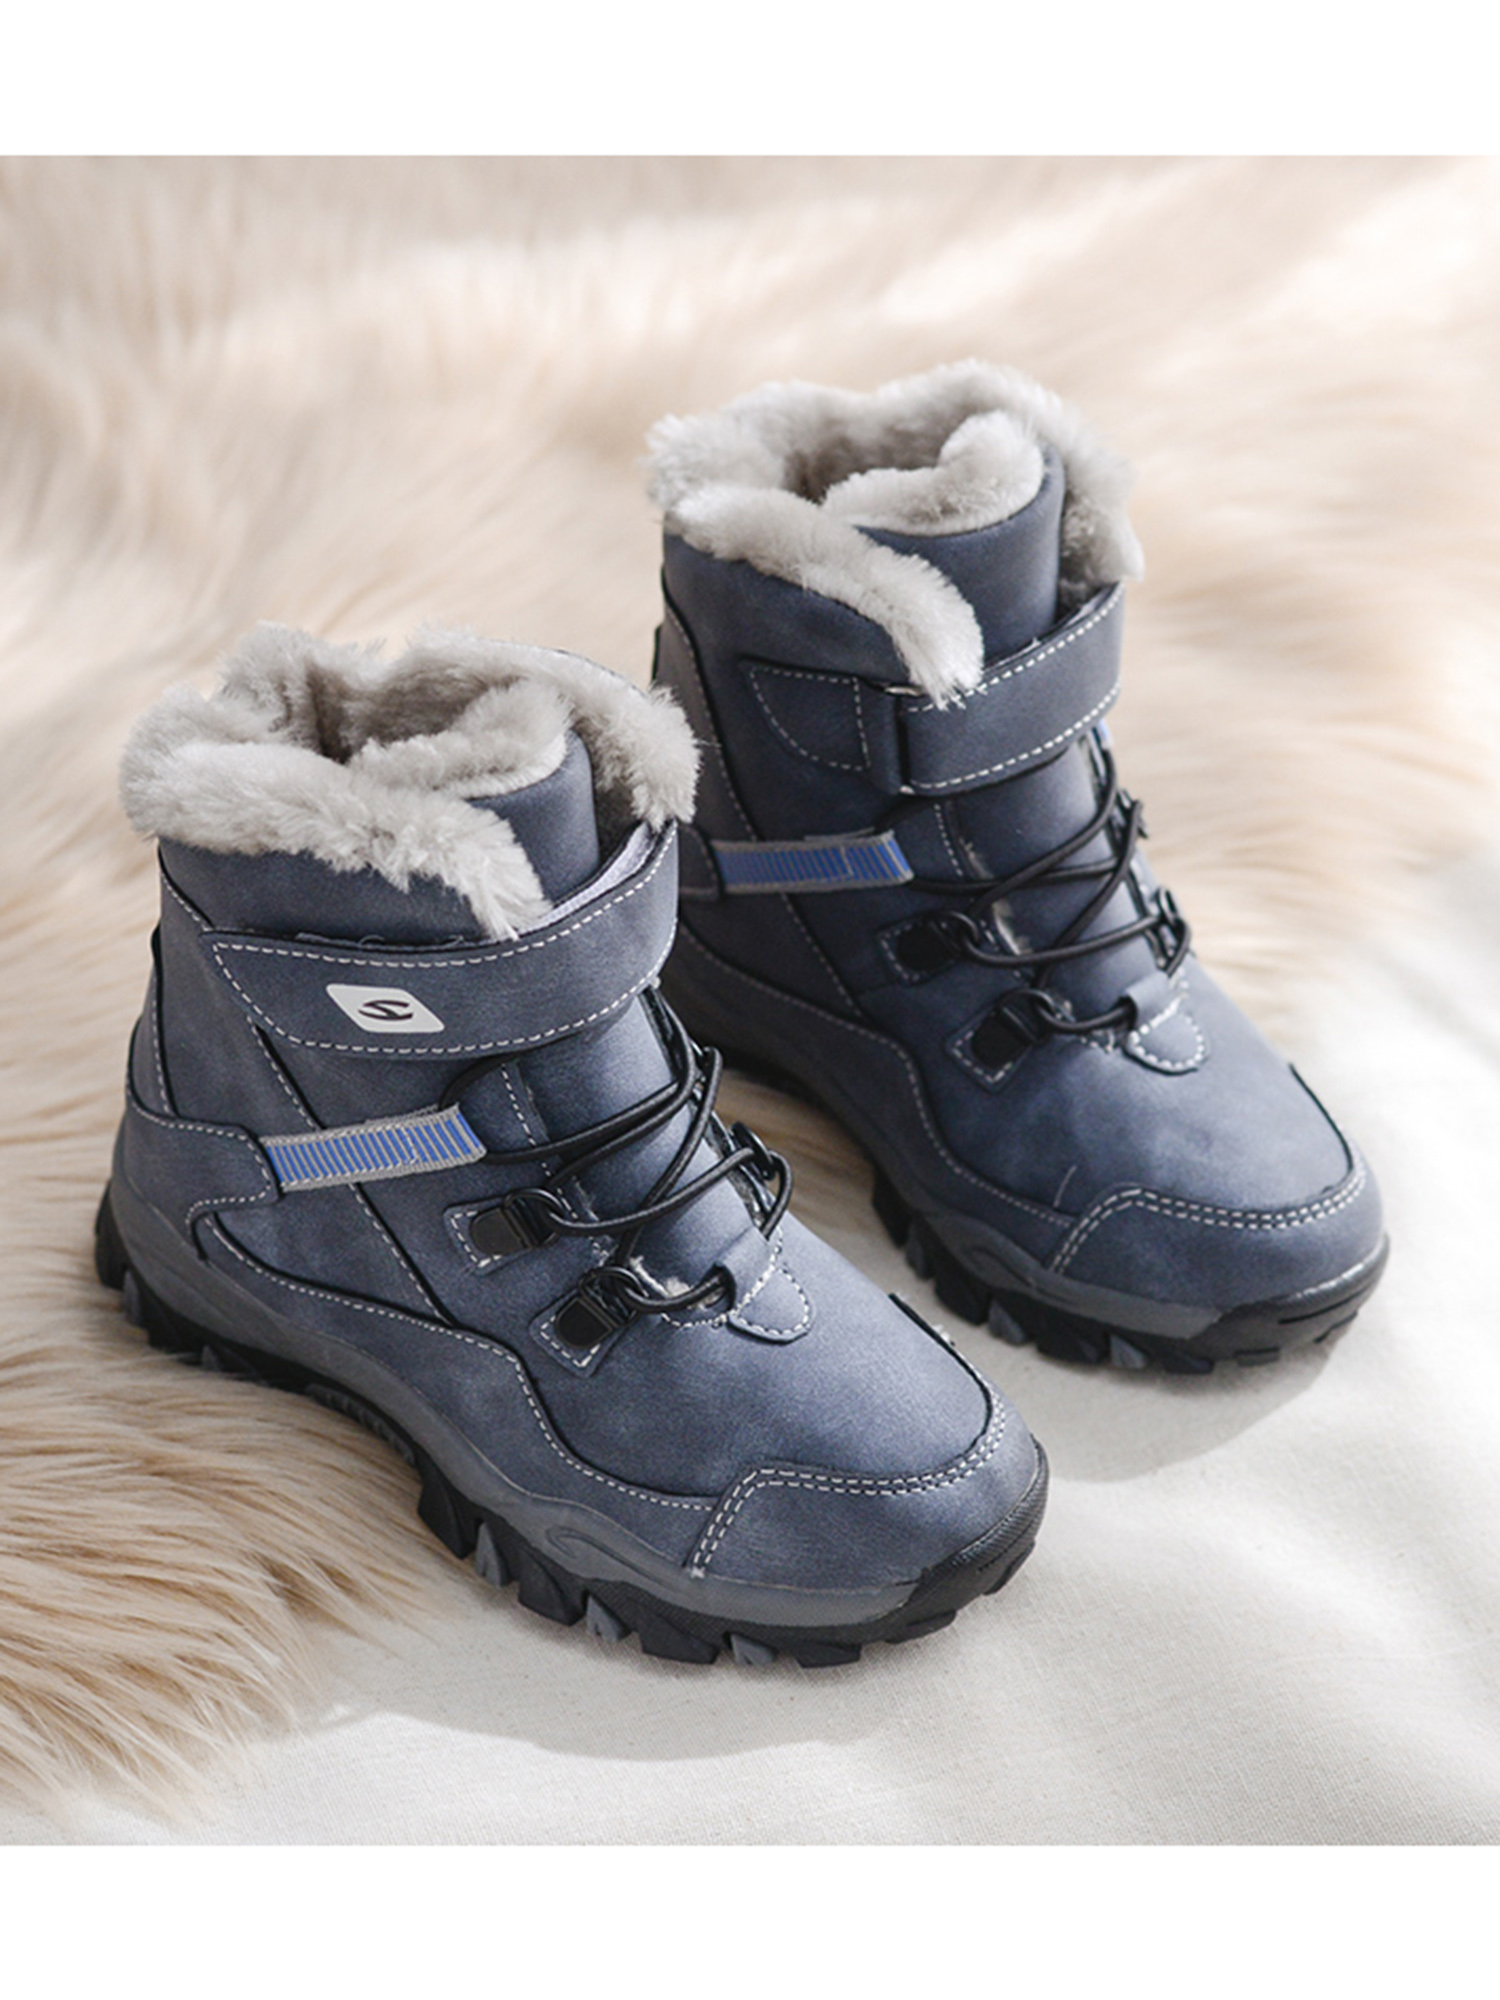 CAIWEI Boys Girls Snow Boots Waterproof Slip On Fur Lined Sneakers Winter Warm Shoes